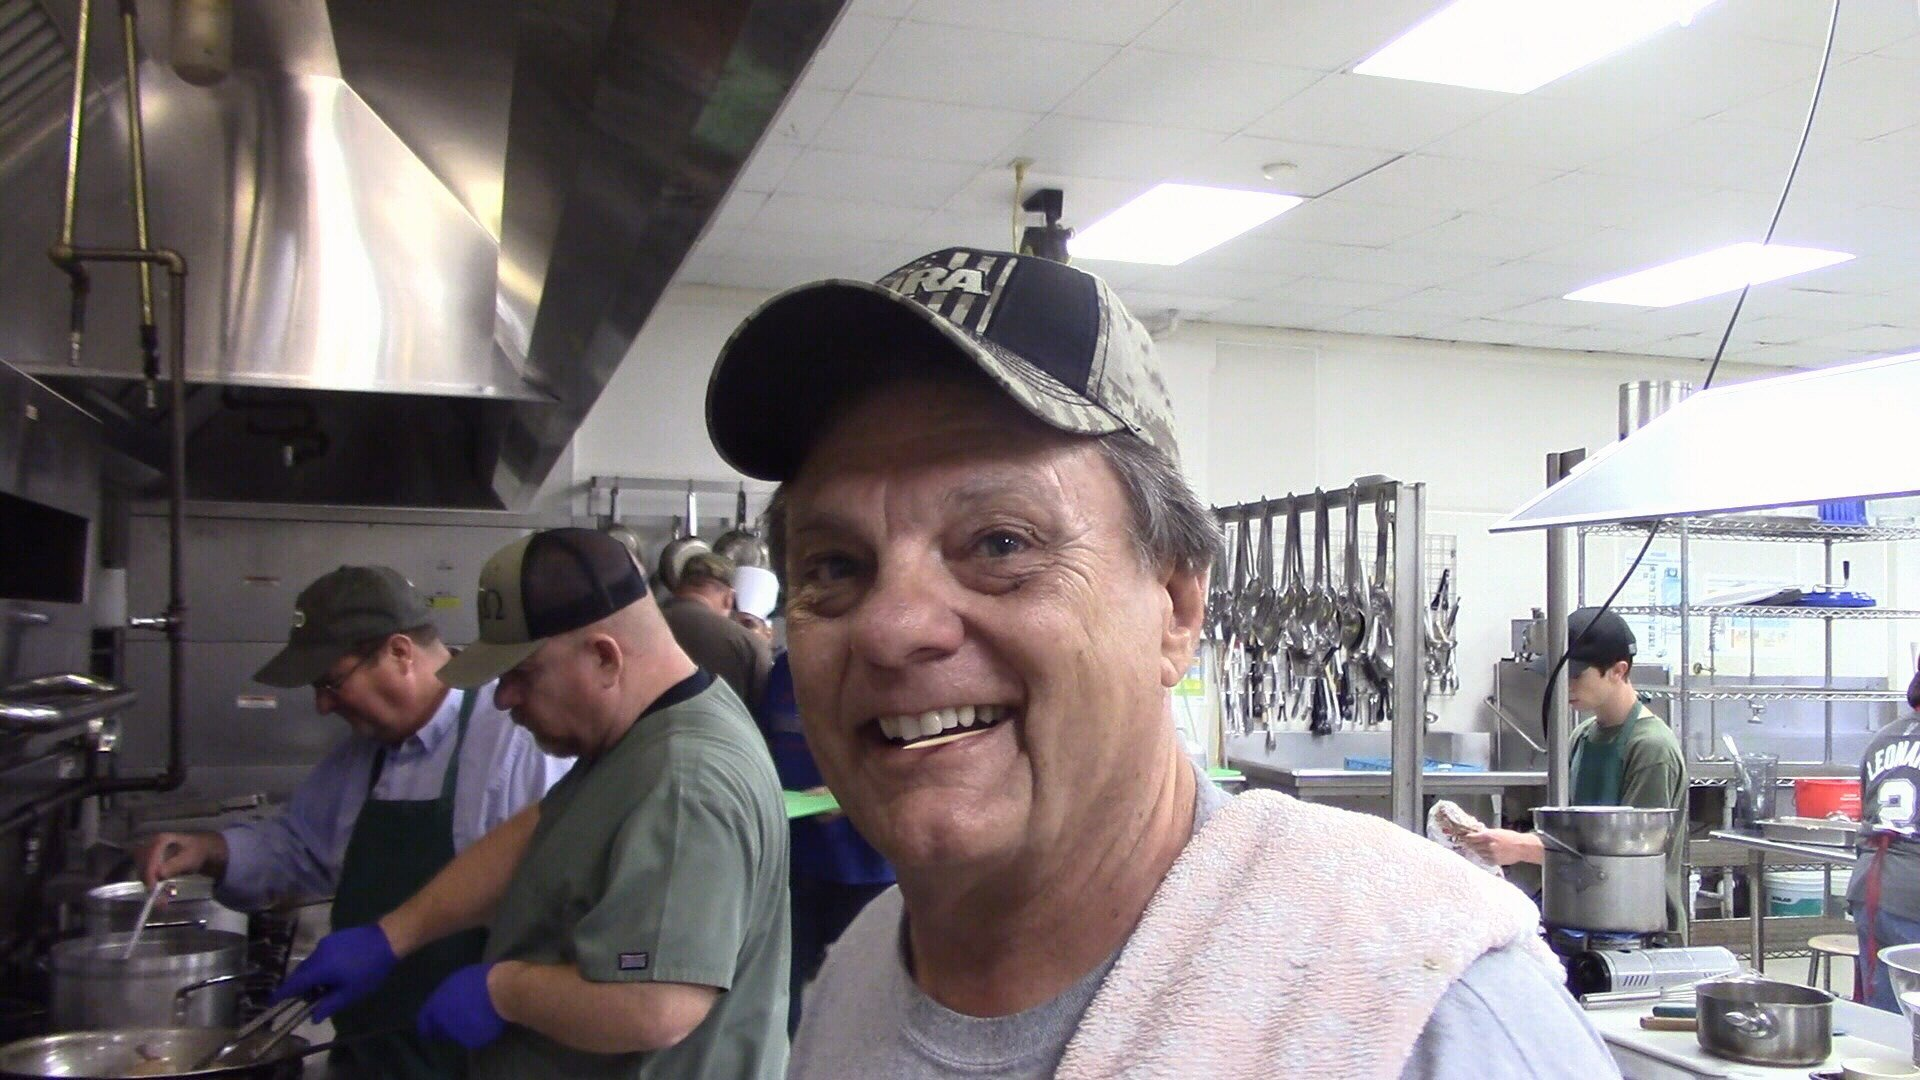 Smokey Neal says the cooking class is the only class he's every enjoyed